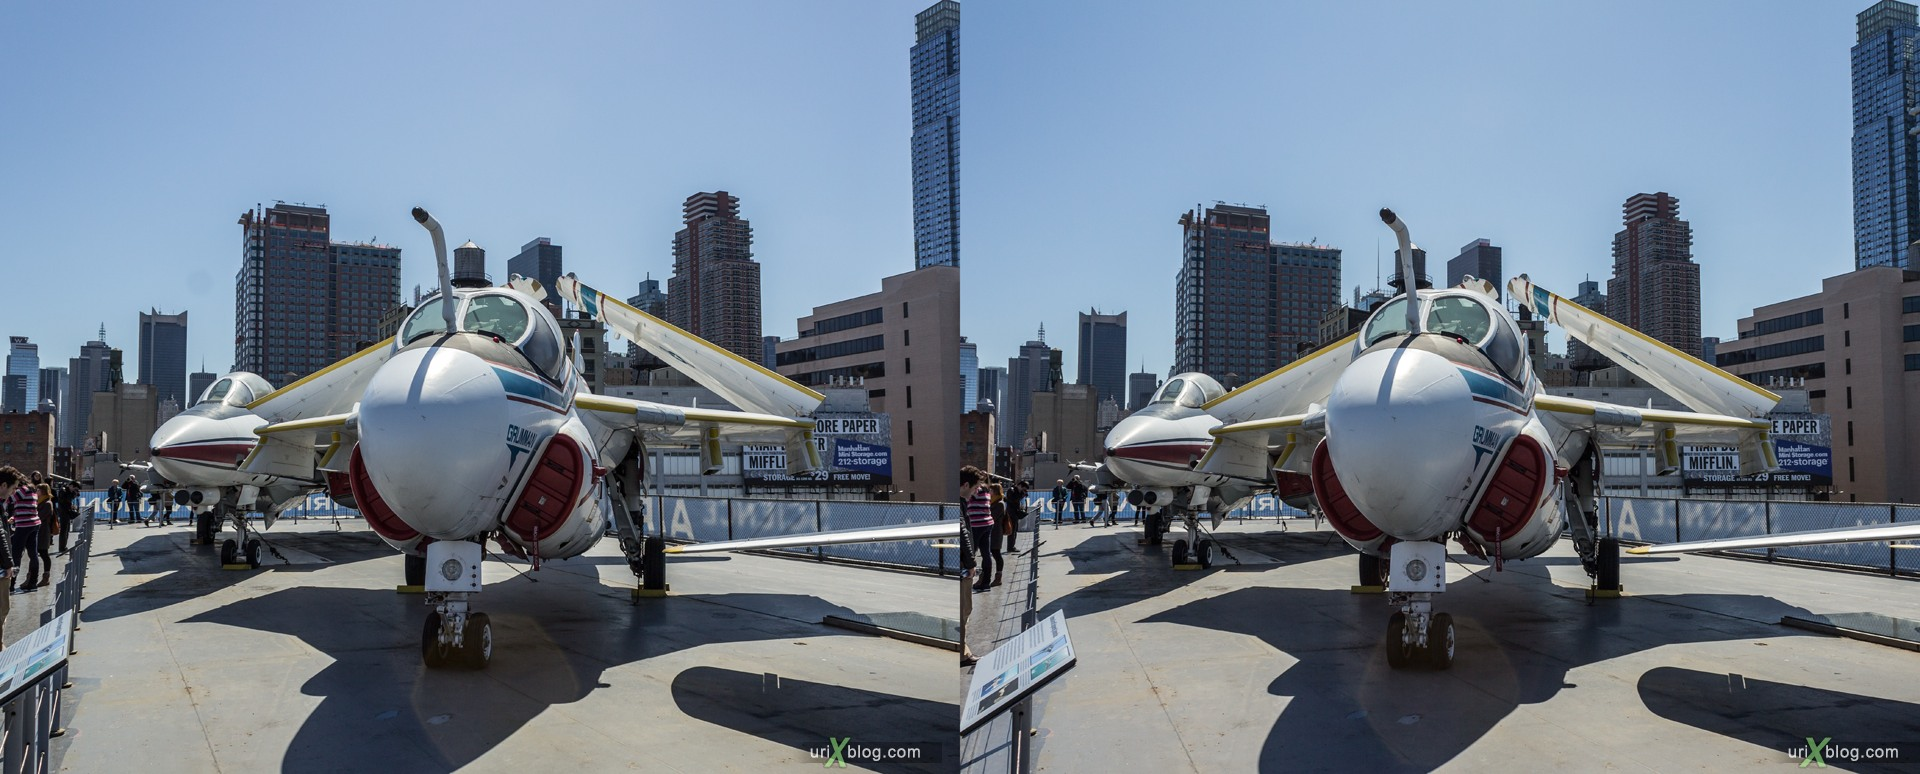 2013, USA, NYC, New York, aircraft carrier Intrepid museum, Grumman A-6 Intruder, sea, air, space, ship, submarine, aircraft, airplane, helicopter, military, 3D, stereo pair, cross-eyed, crossview, cross view stereo pair, stereoscopic